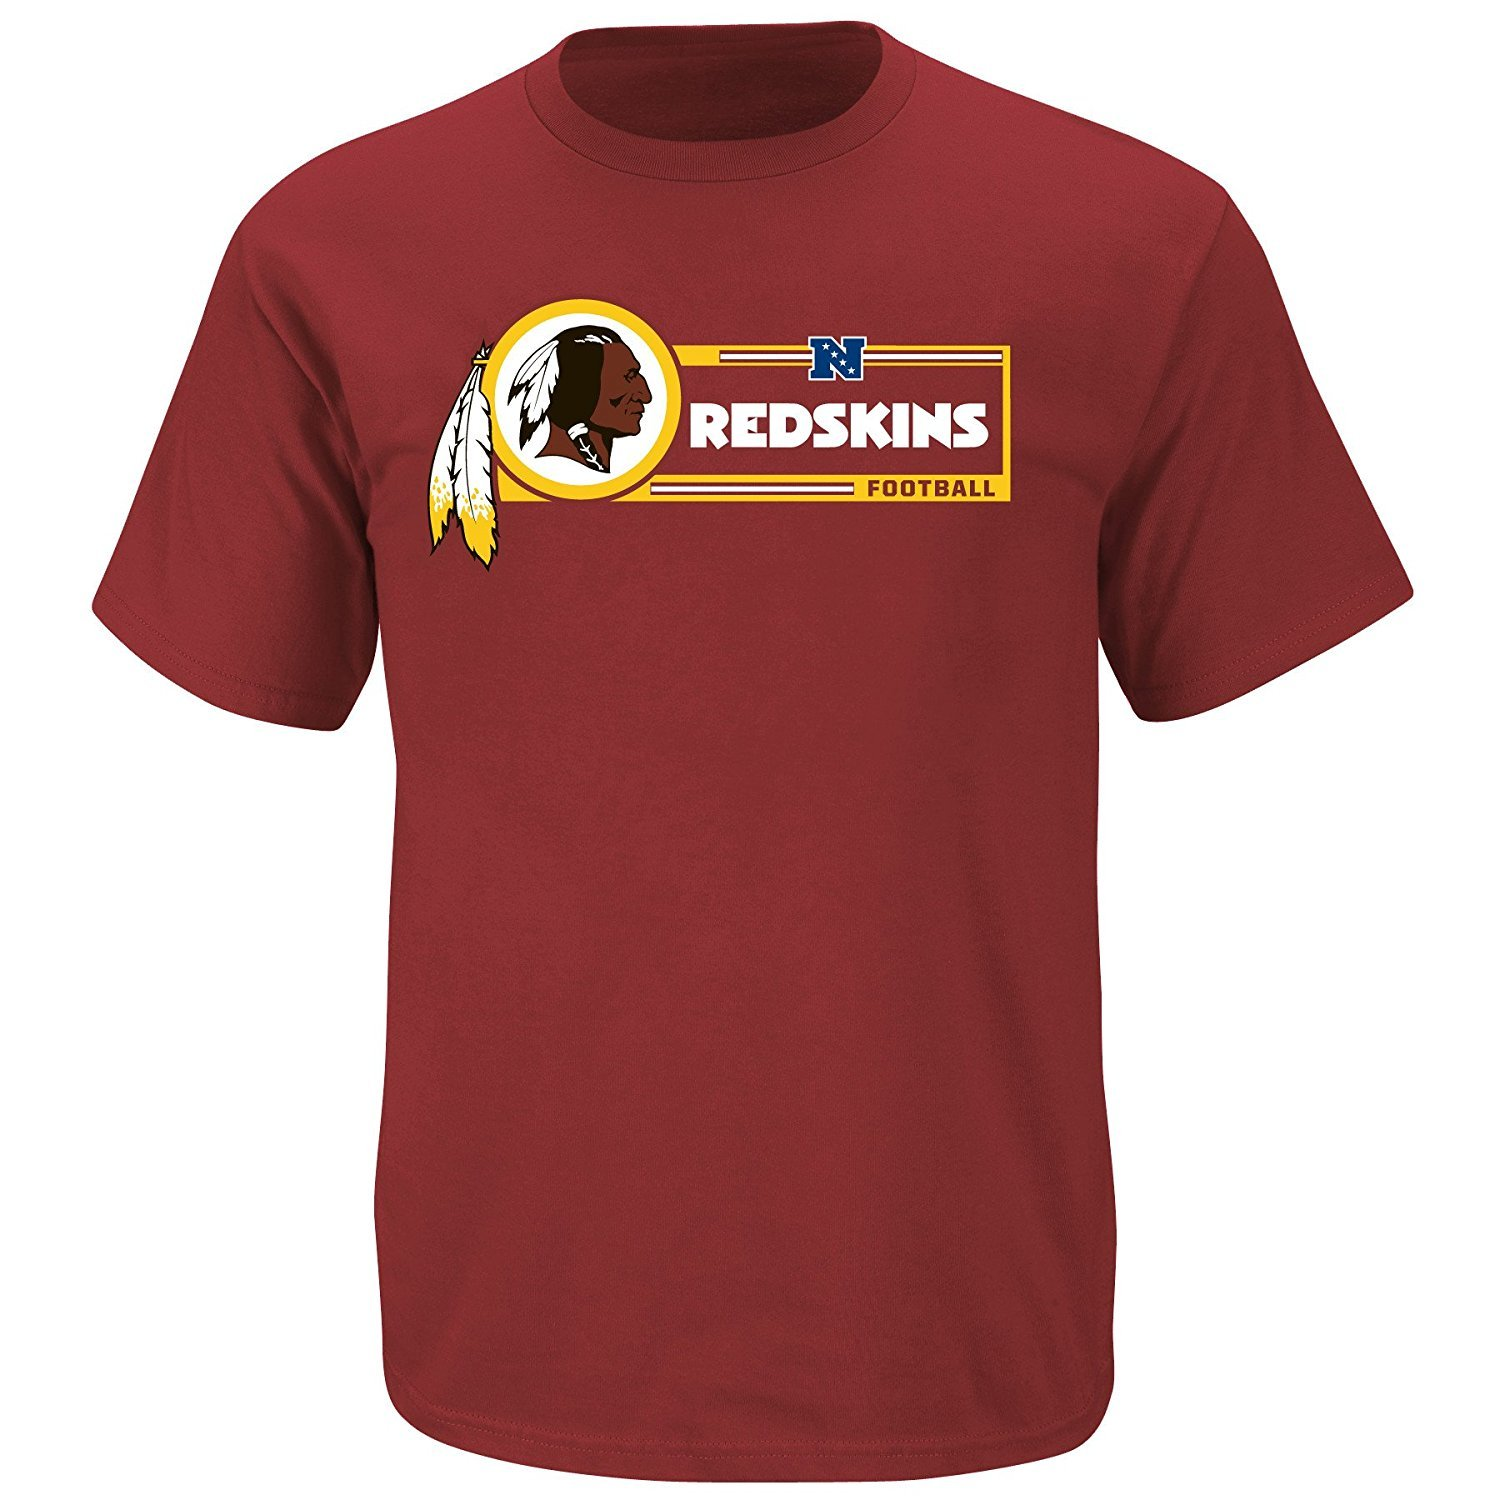 NFL Men's Player Name and Number Eligible Receiver Short Sleeve T-Shirt